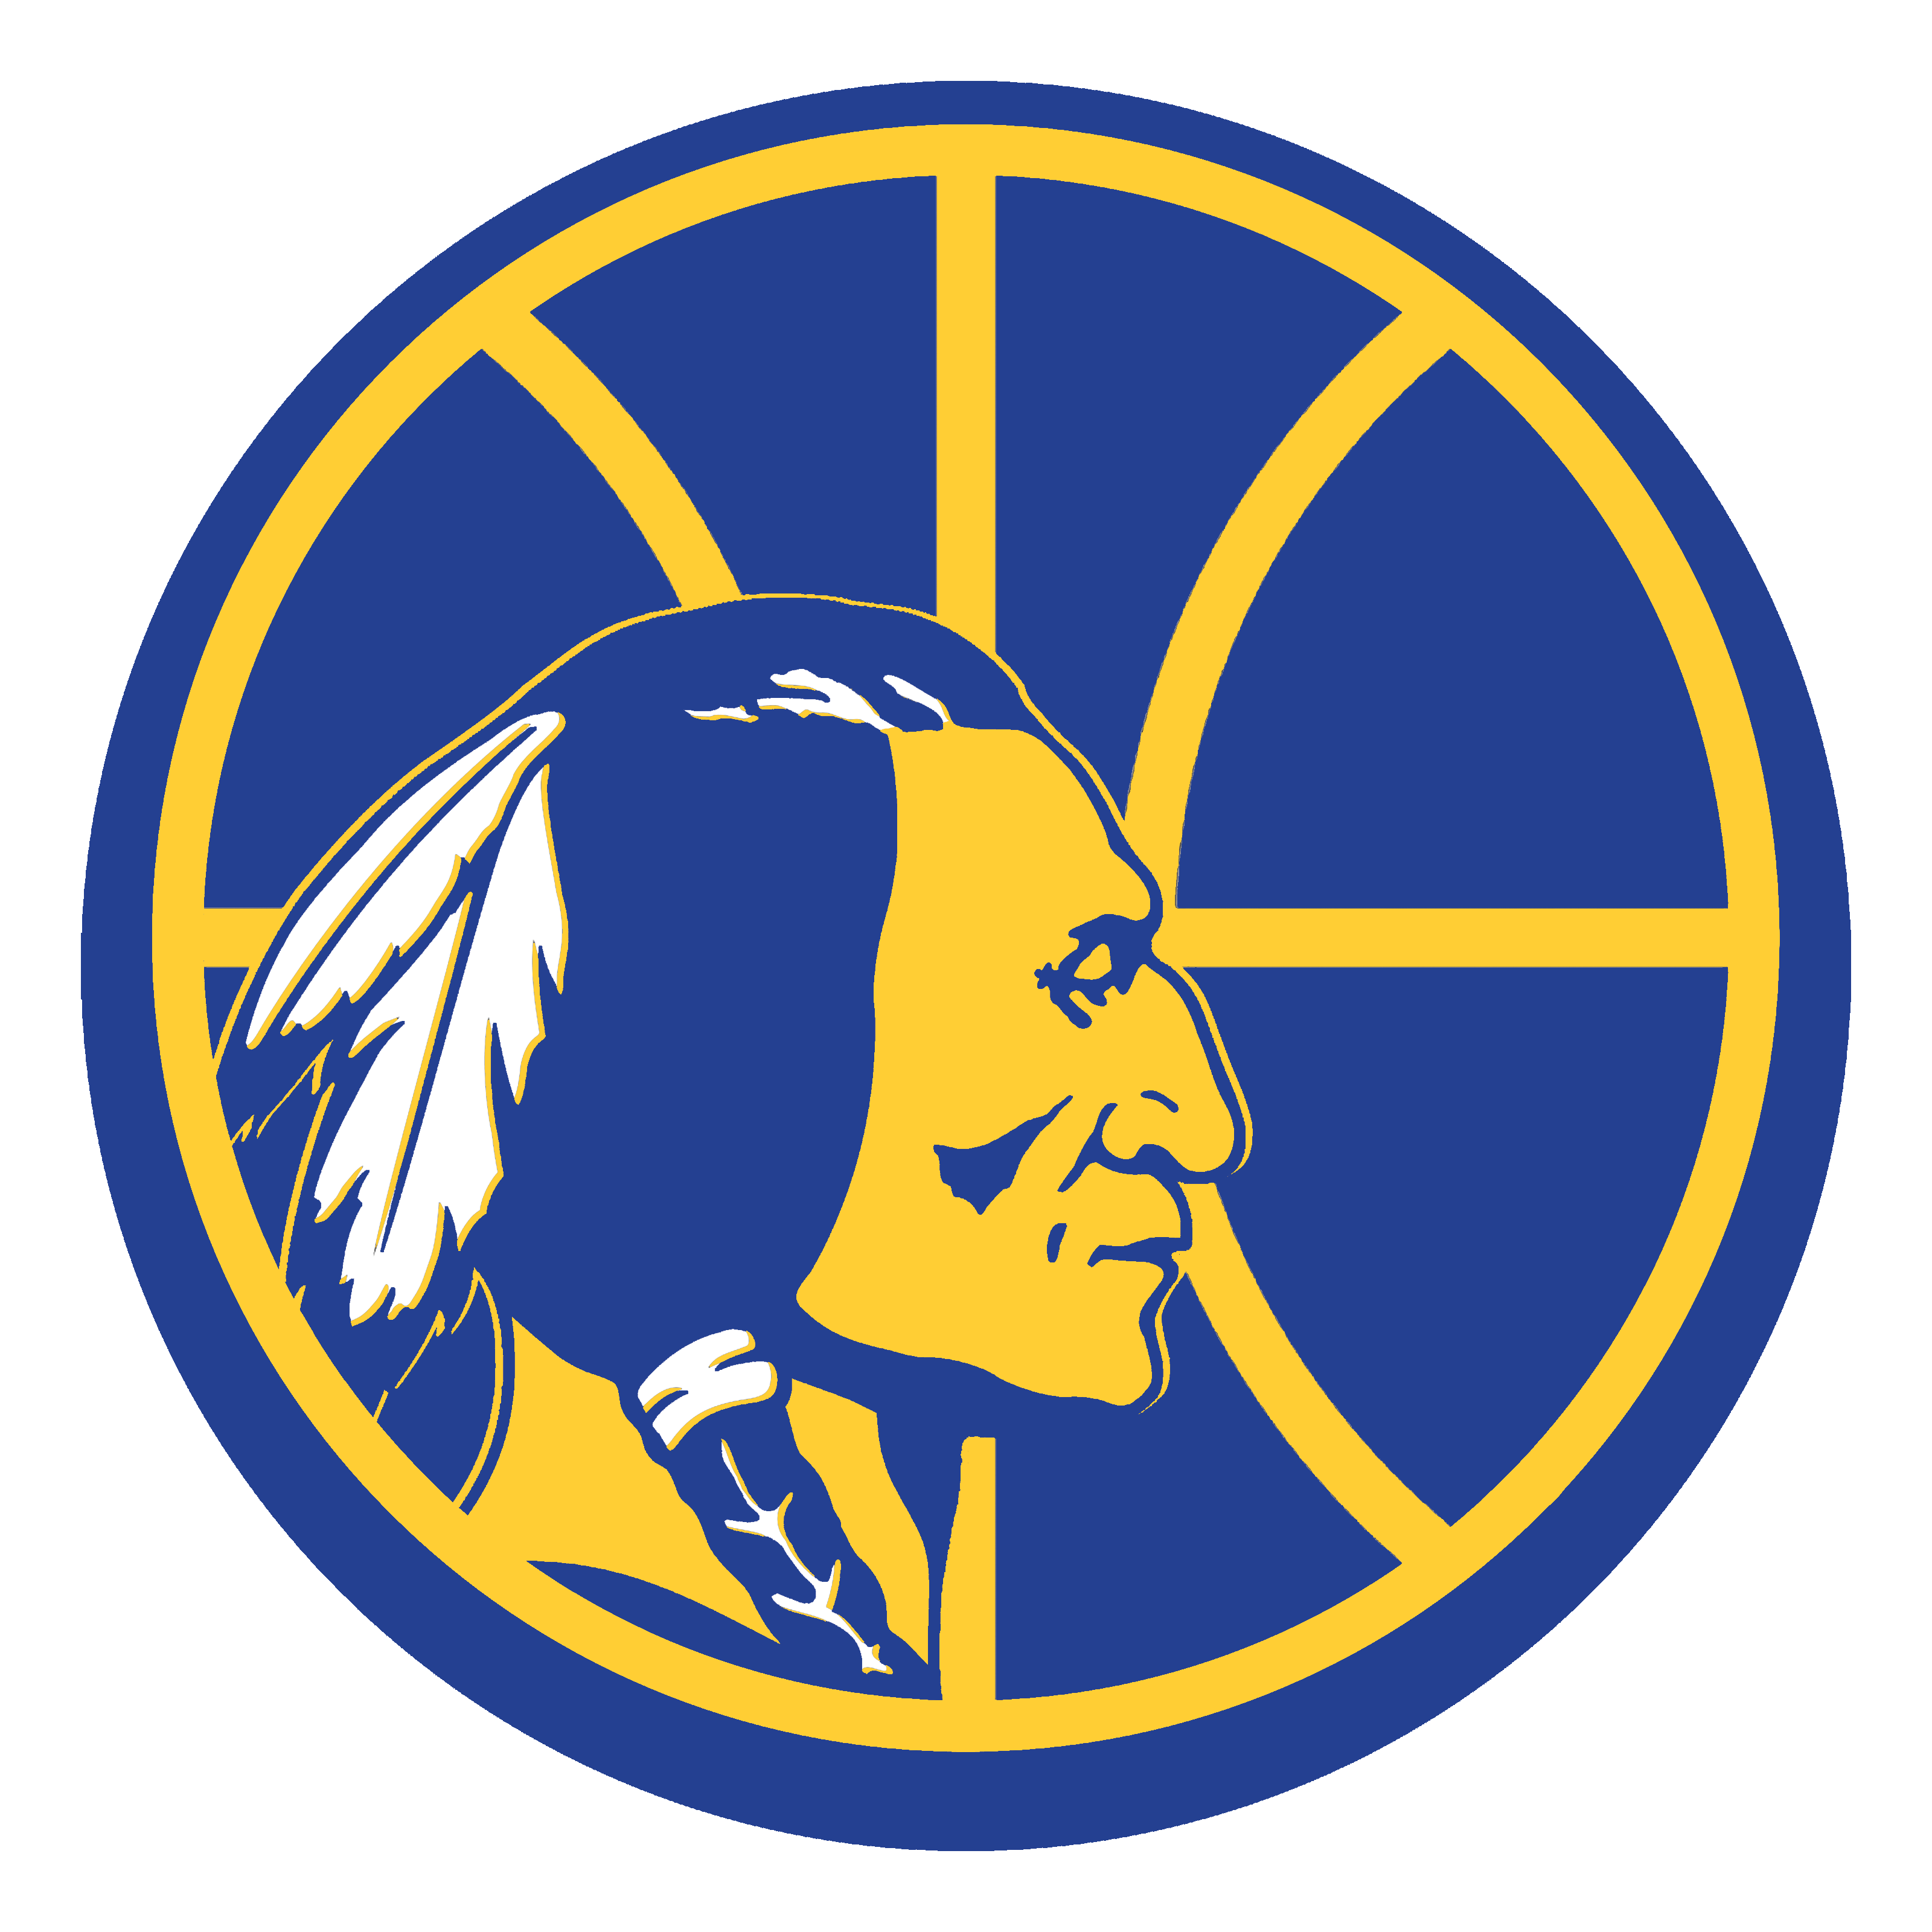 Whiteland warriors basketball clipart image royalty free stock About Warriors Basketball Club image royalty free stock